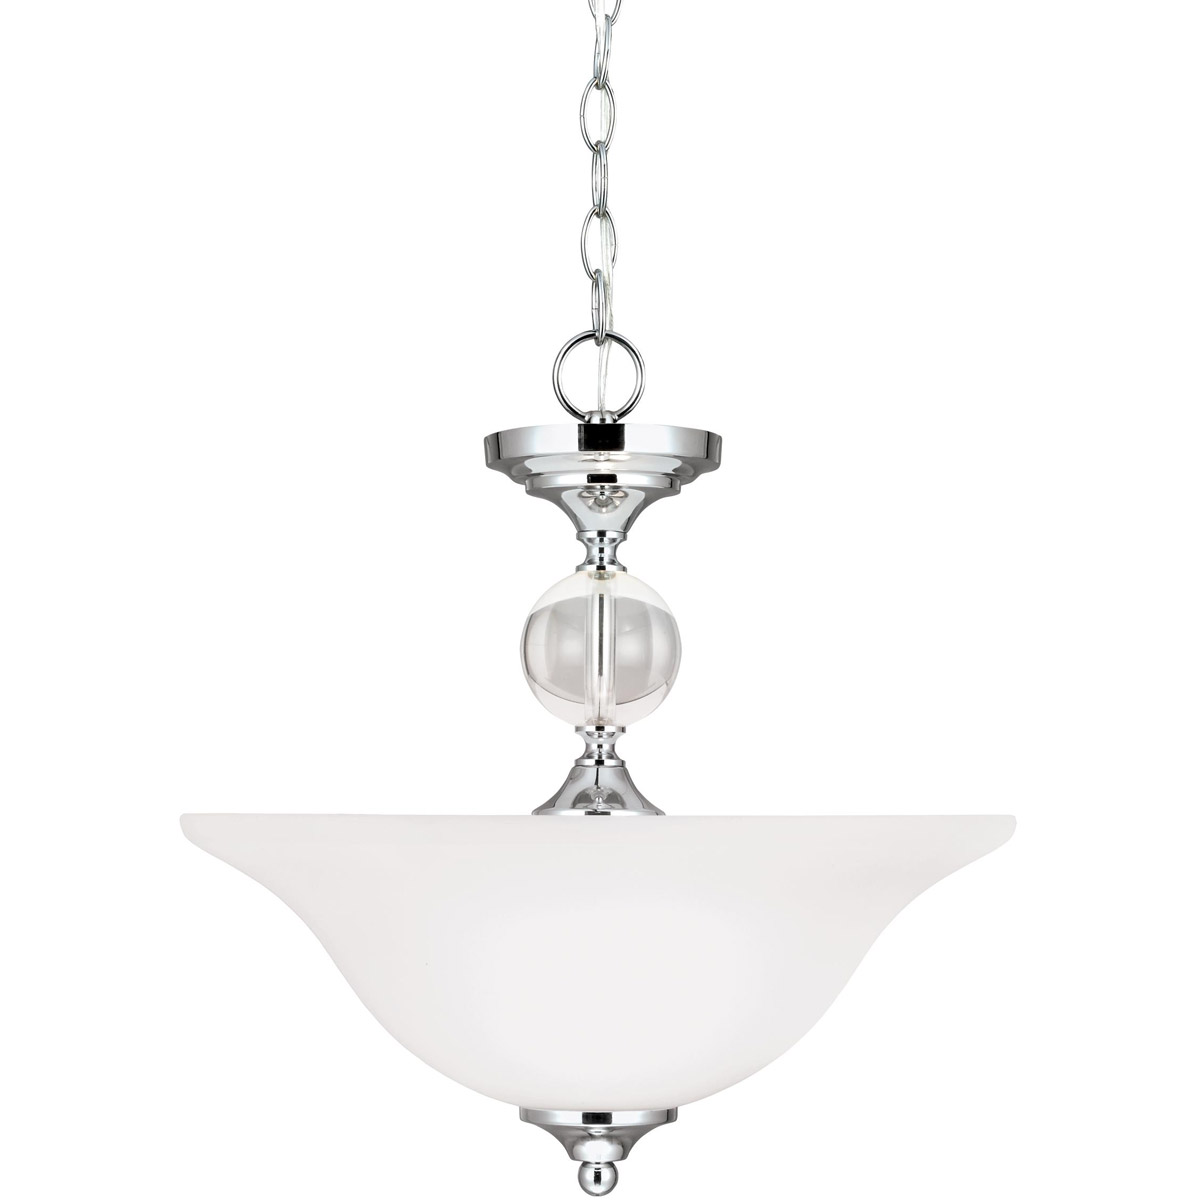 Sea Gull Englehorn 2 Light Semi-Flush Convertible Pendant in Chrome / Optic Crystal 7713402-05